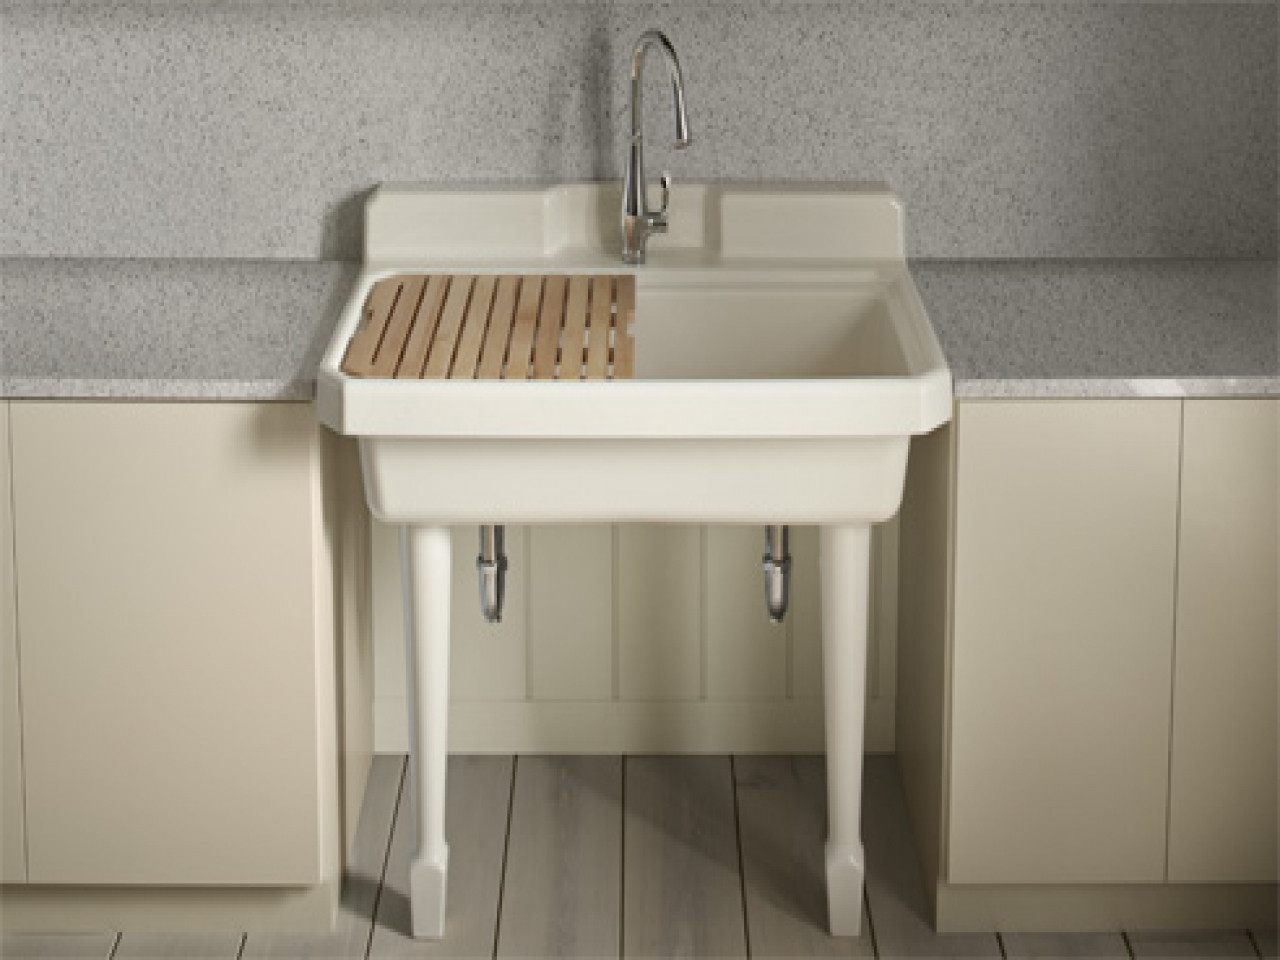 Best ideas about Laundry Room Utility Sink . Save or Pin Kitchen sinks kohler laundry room deep sink kohler Now.